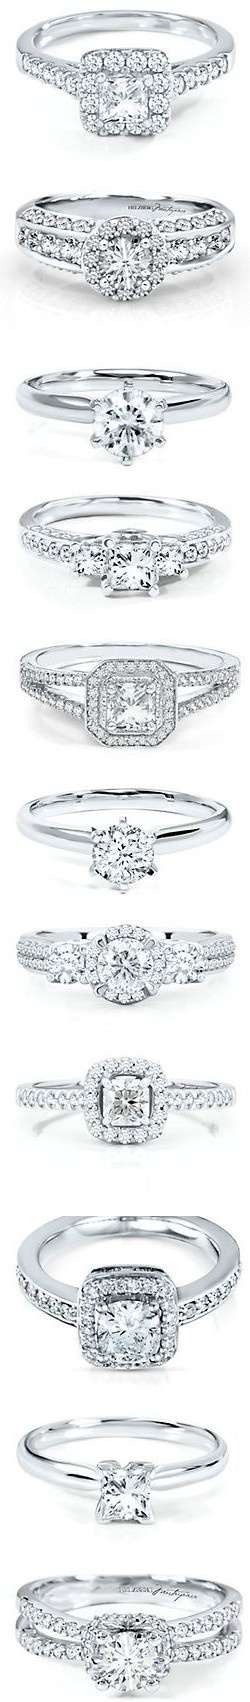 I love the square ones. I picked out a wedding set that looks like them.: Dream Ring, Girl, Diamond Rings, Wedding Ideas, Dream Wedding, Wedding Rings, Sparkle, Engagement Rings